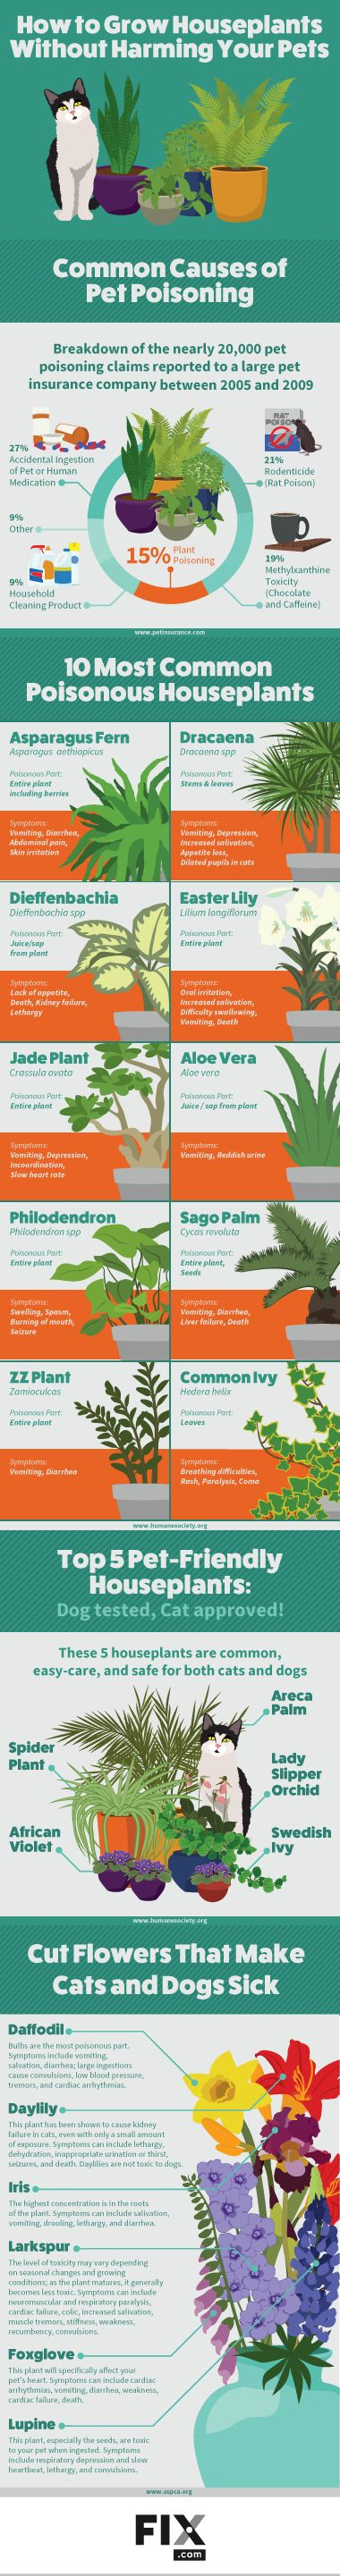 Les plantes d'intérieur qui peuvent empoisonner les chats - Houseplants Safe for Cats and Dogs | Fix.com